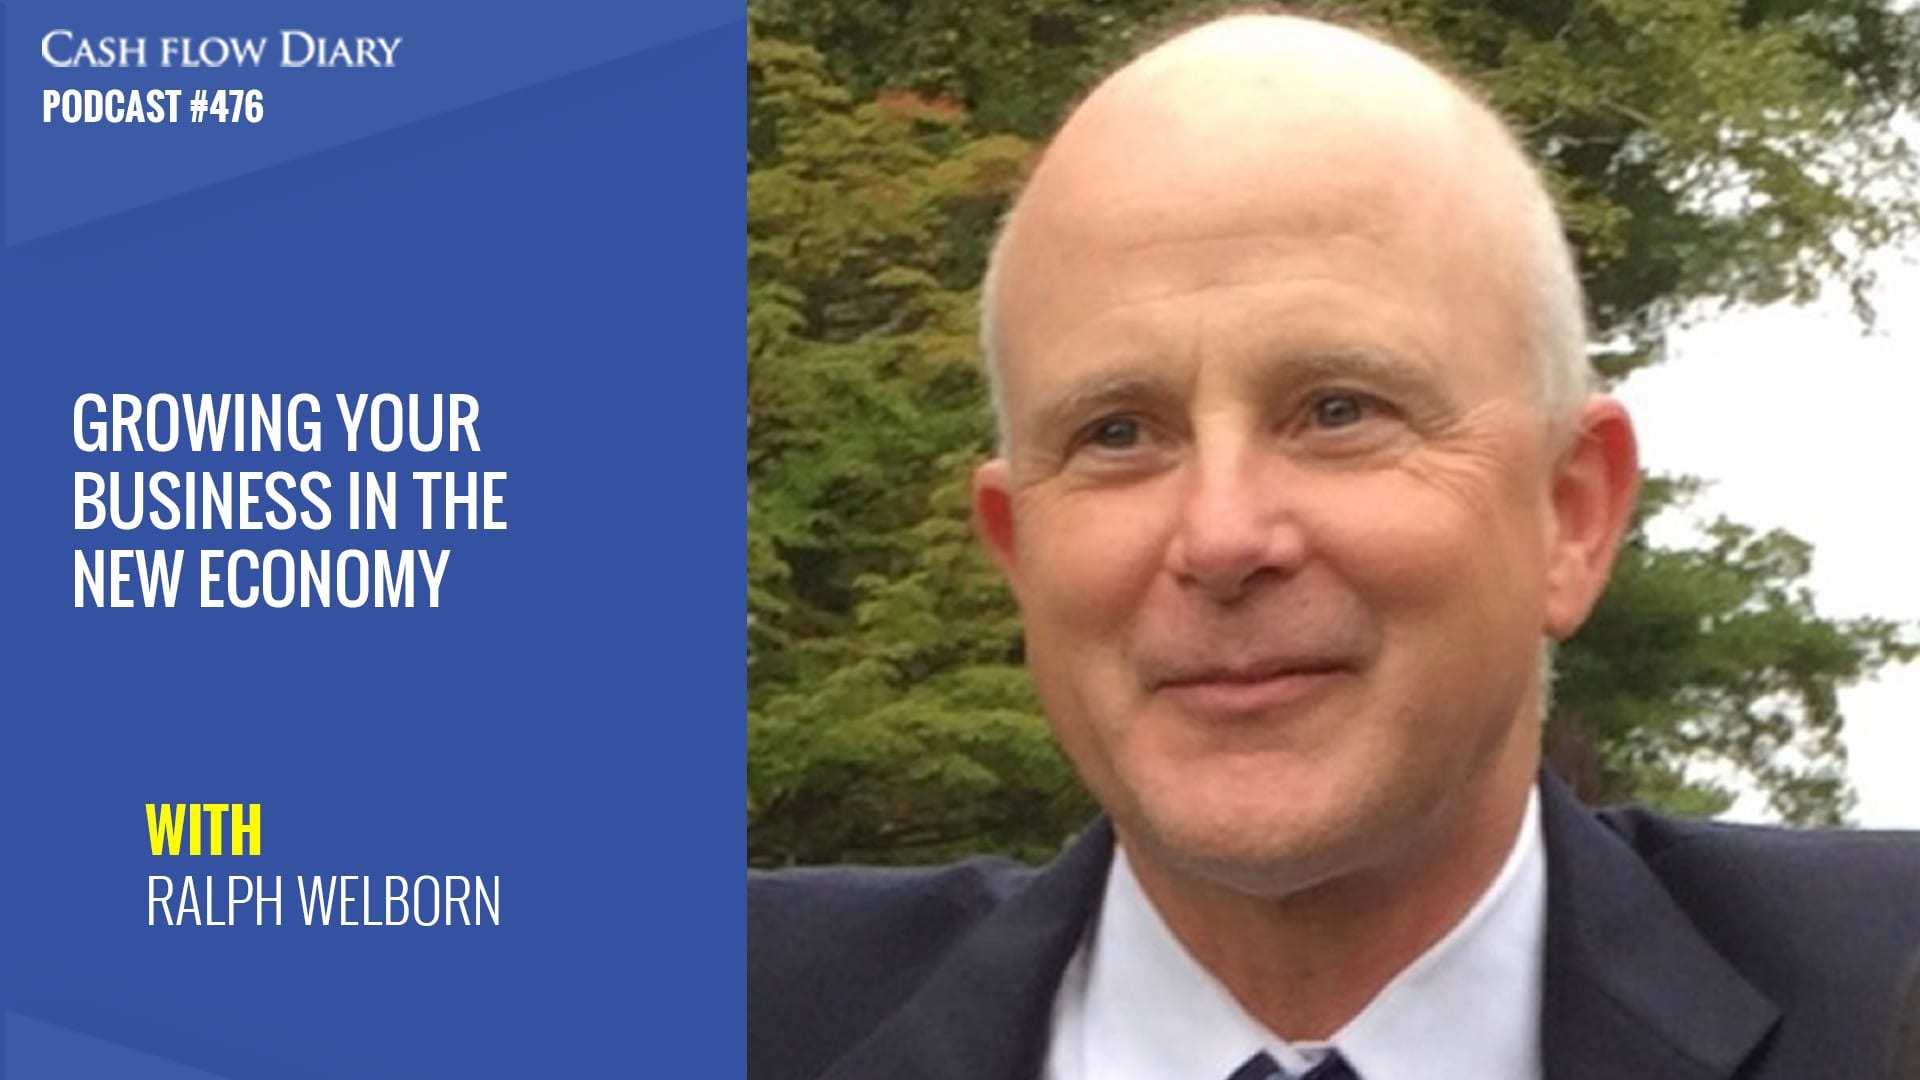 Ralph Welborn On Growing Your Business In The New Economy